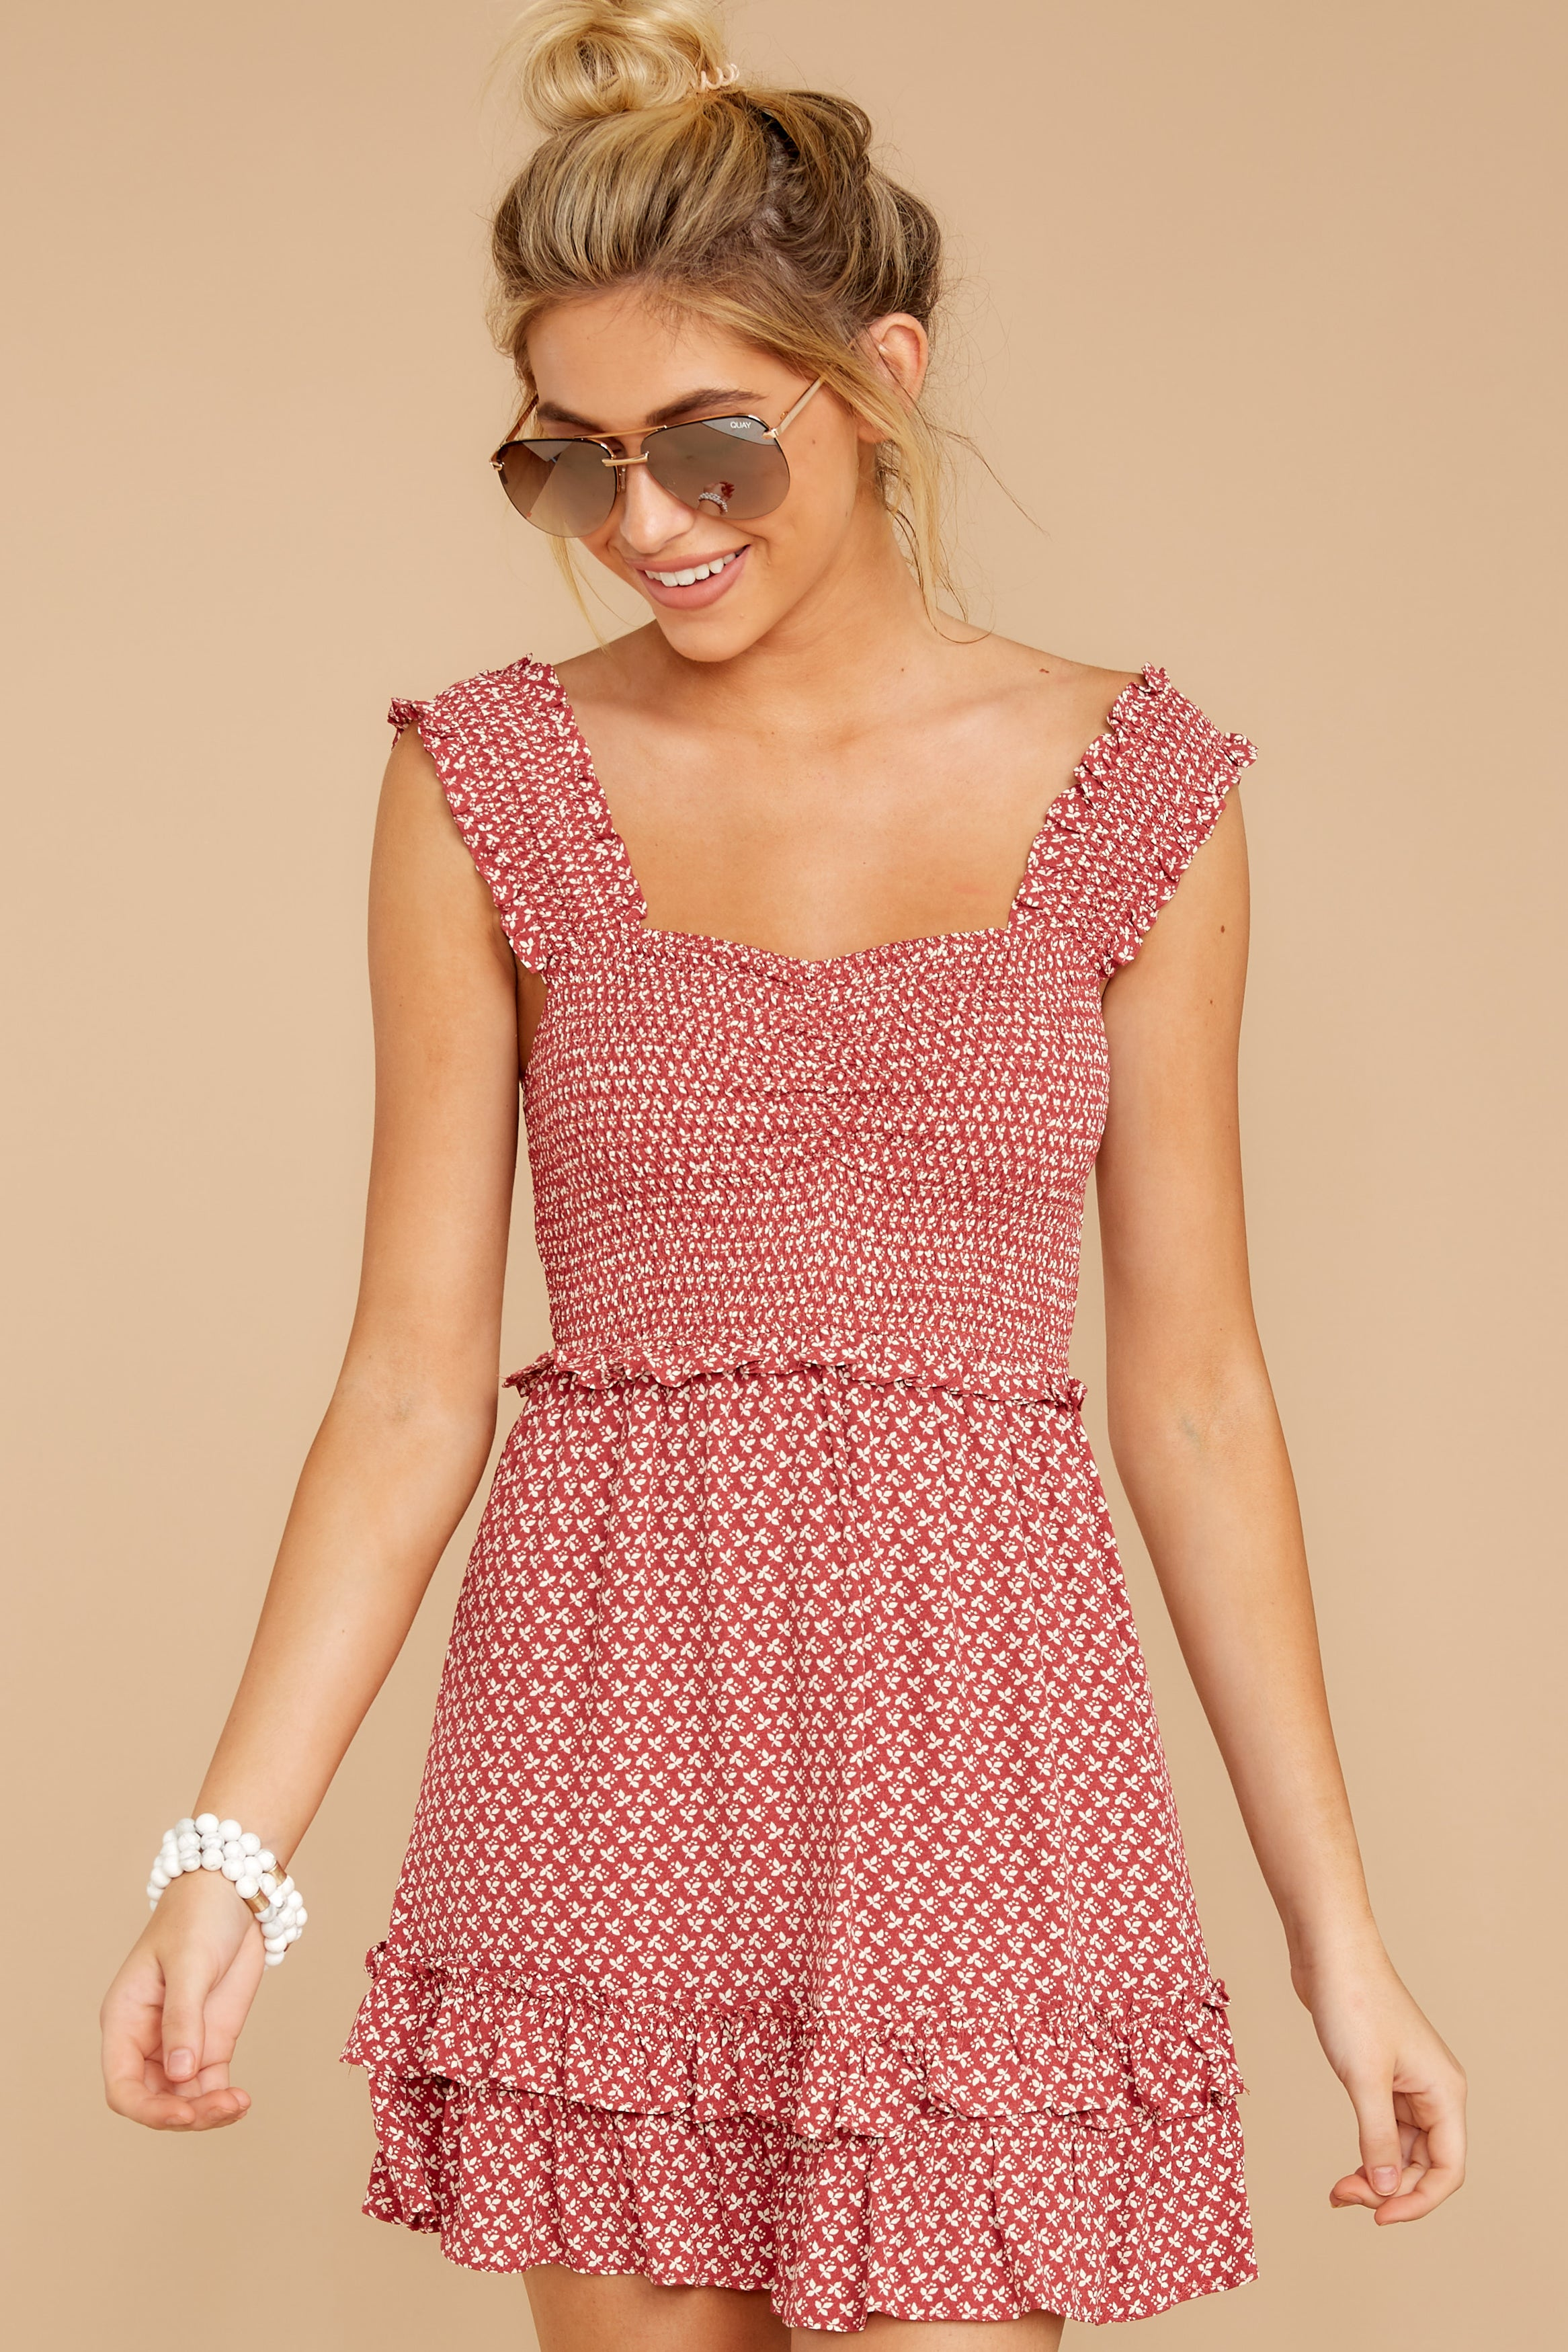 5 Sweetness With Sass Red Print Dress at reddressboutique.com